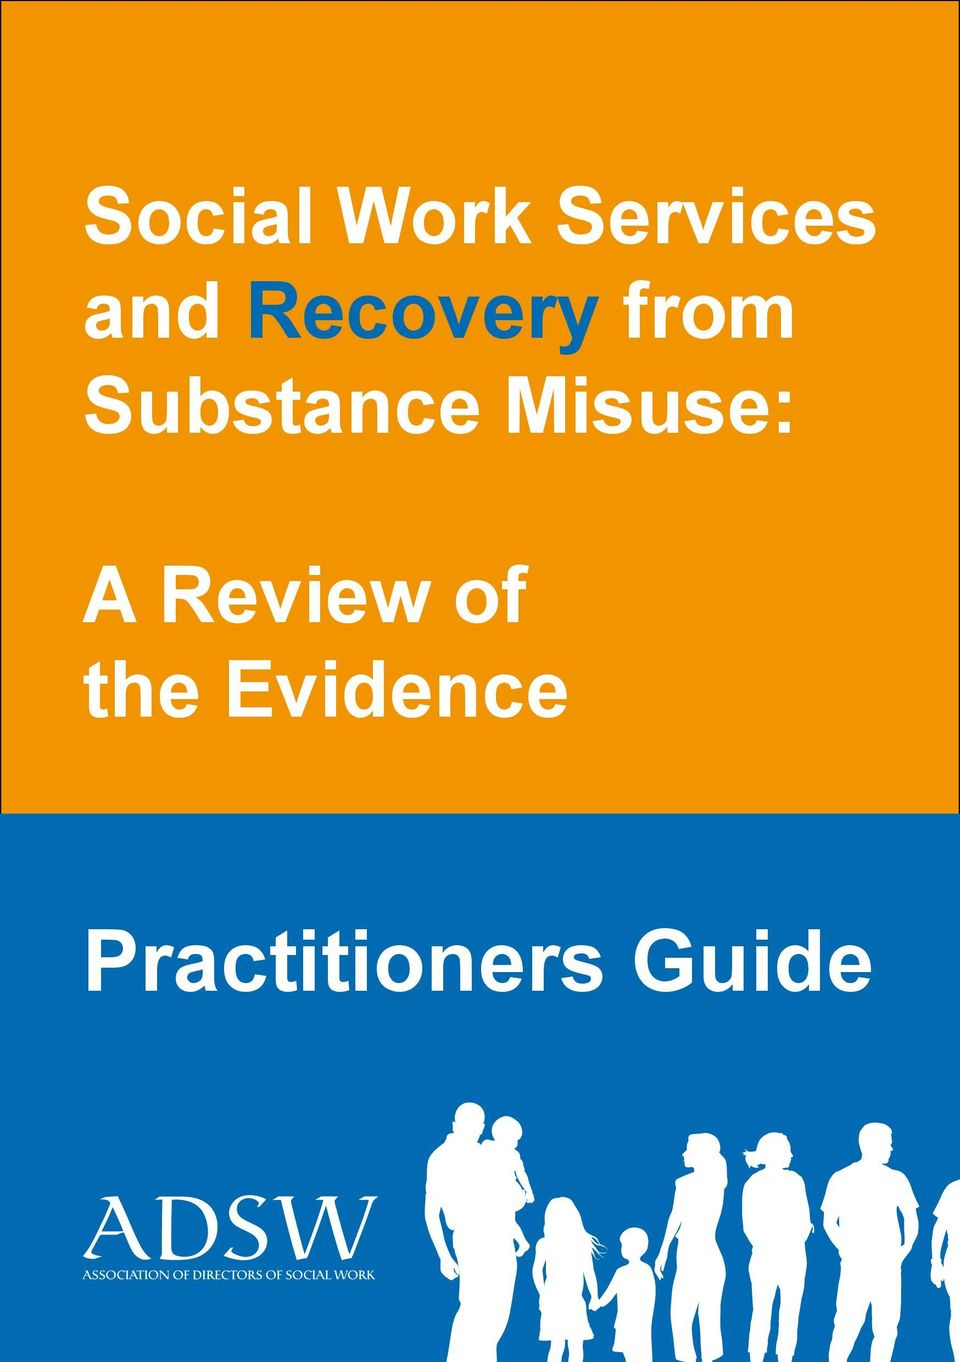 Misuse: A Review of the